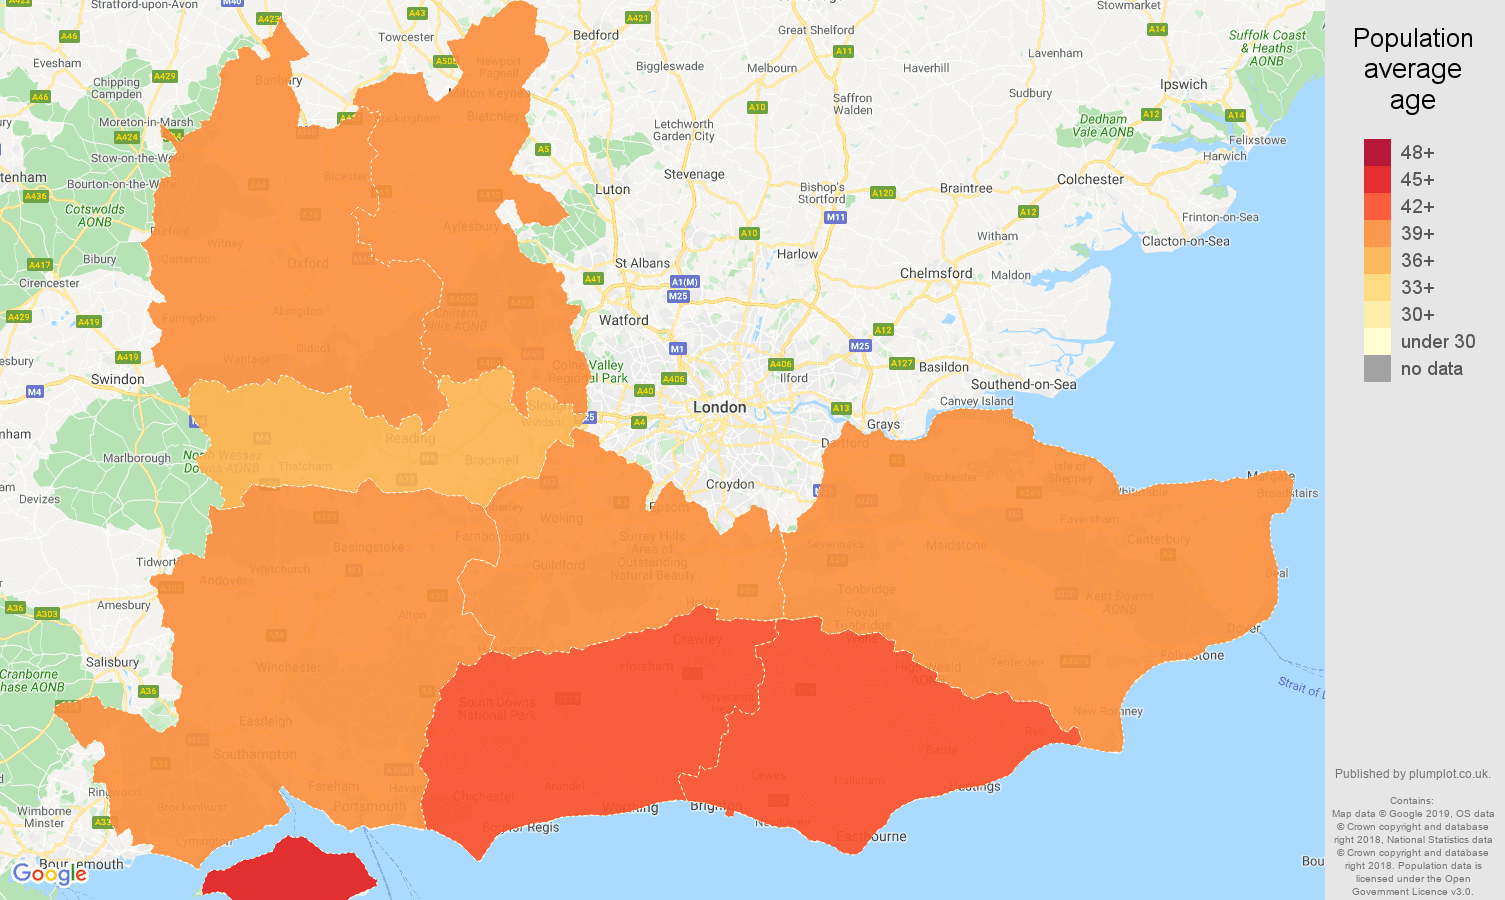 South East population average age map